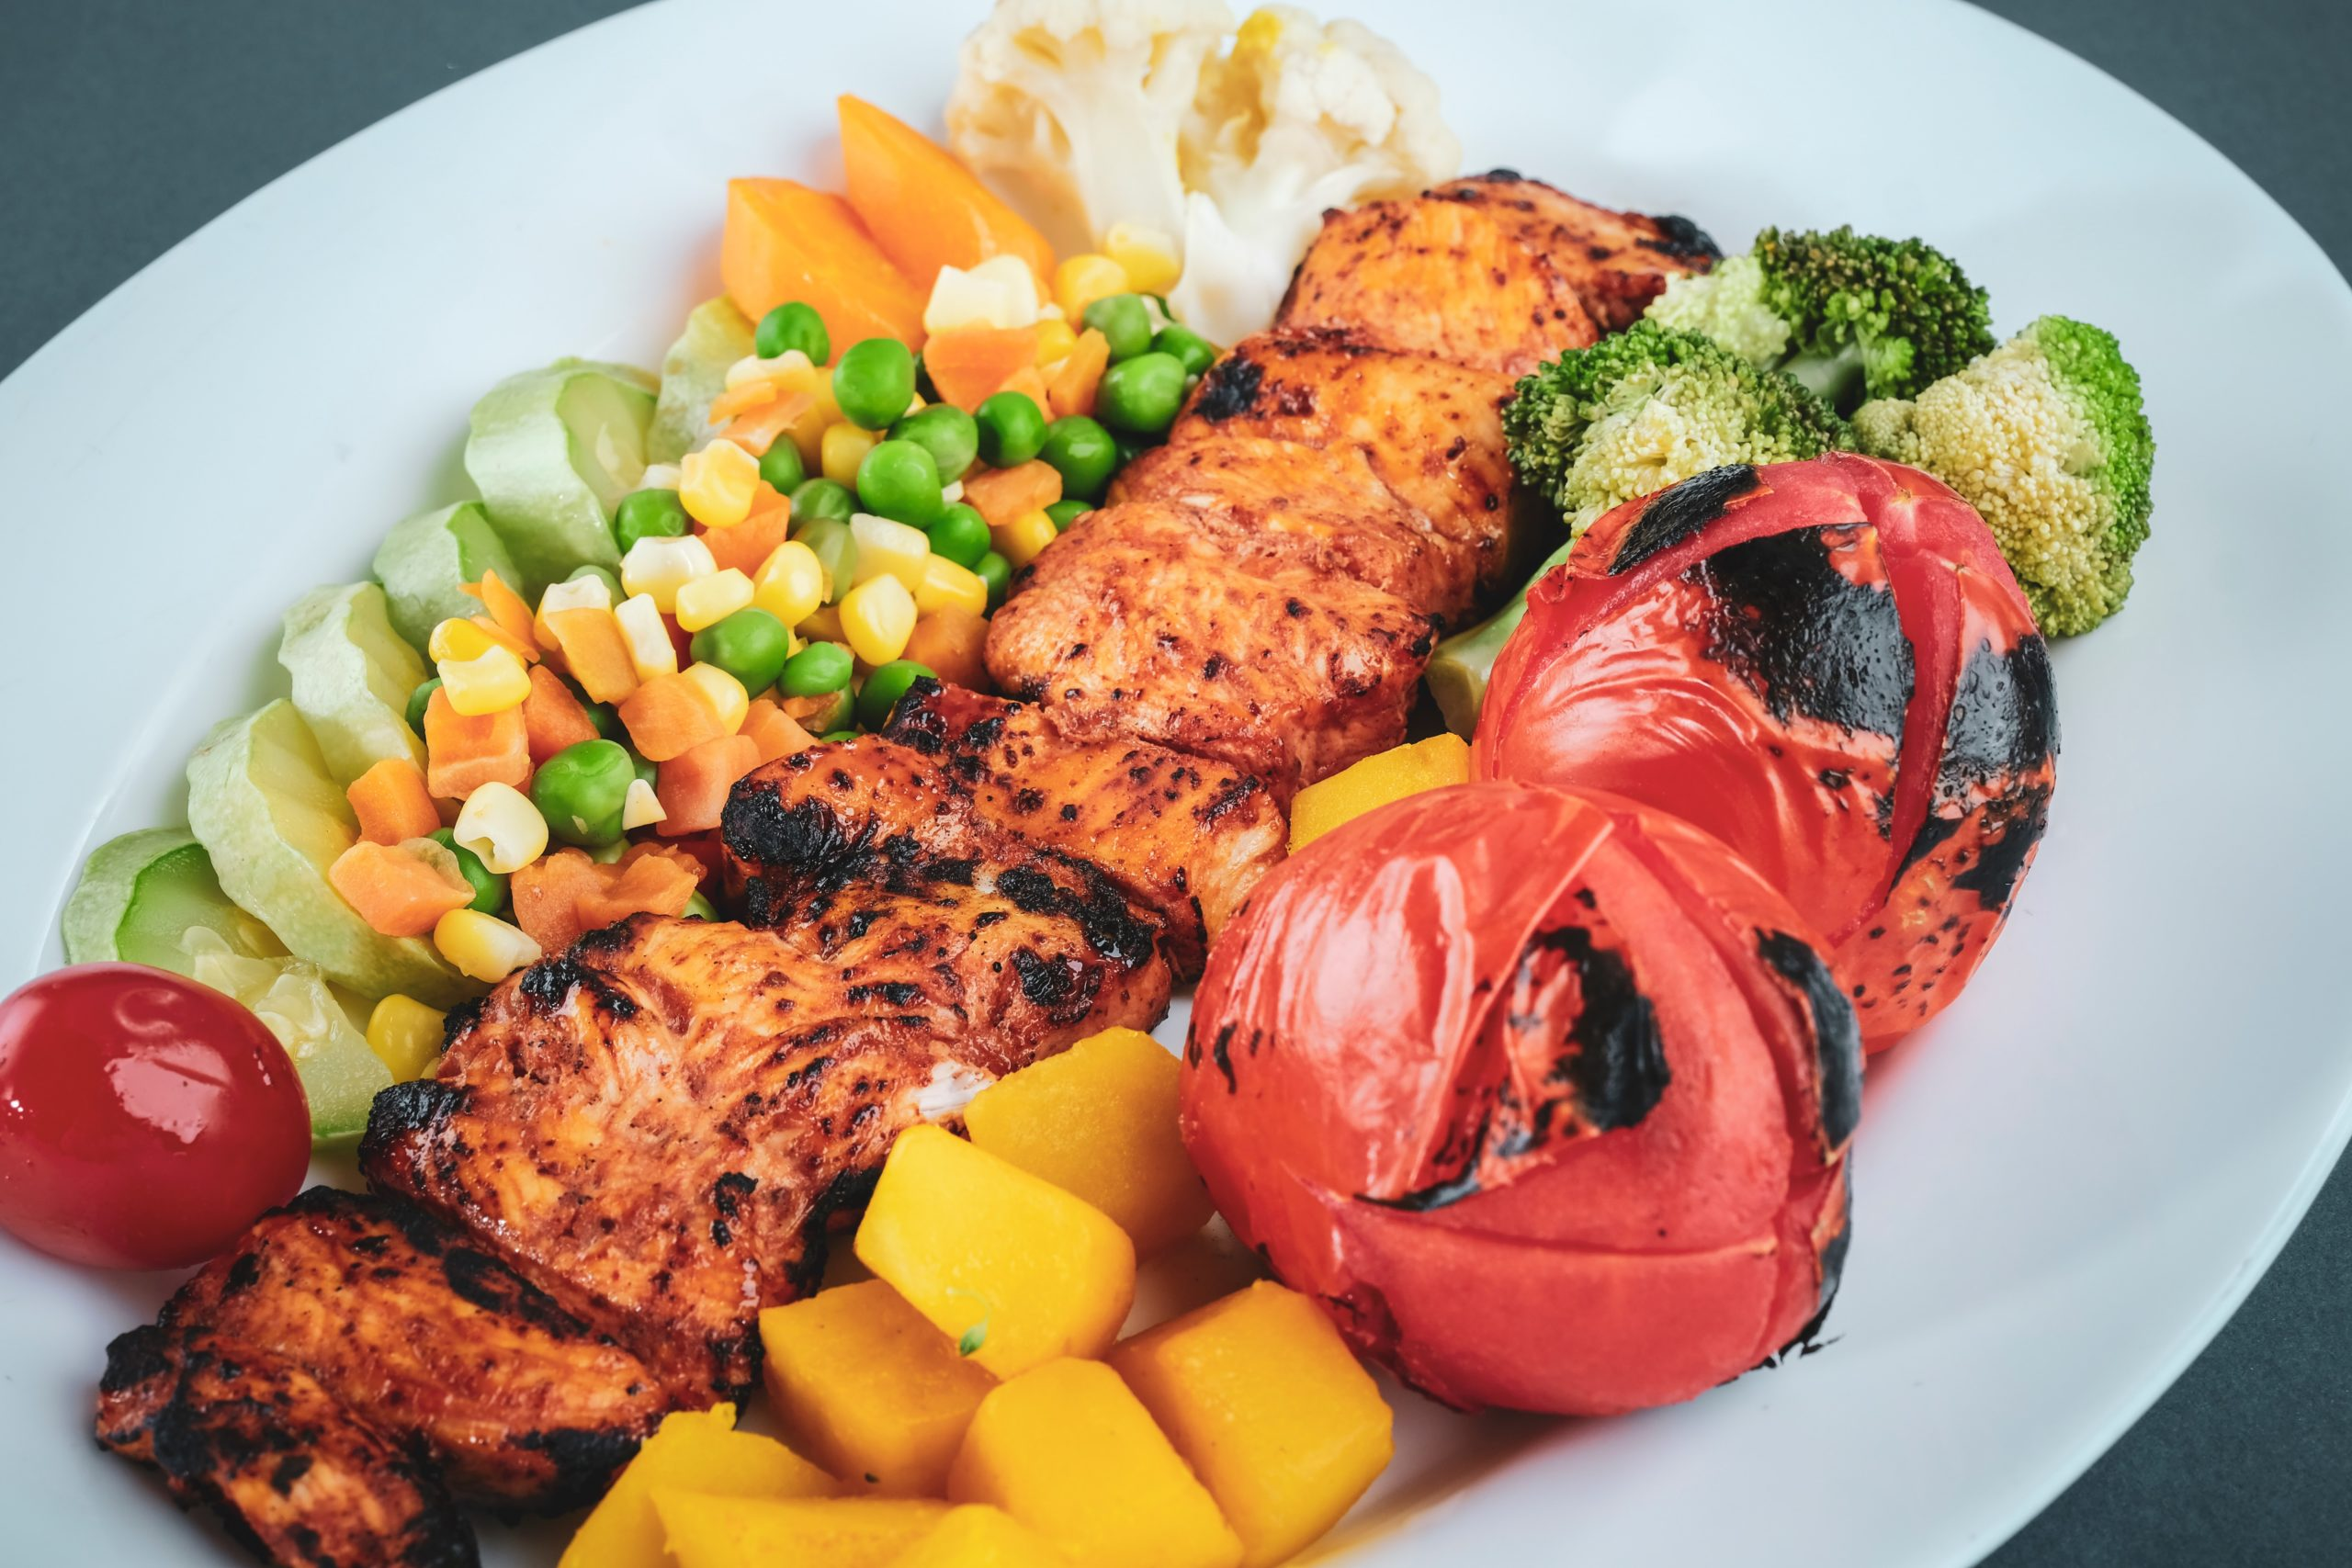 Grilled vegetables and tofu